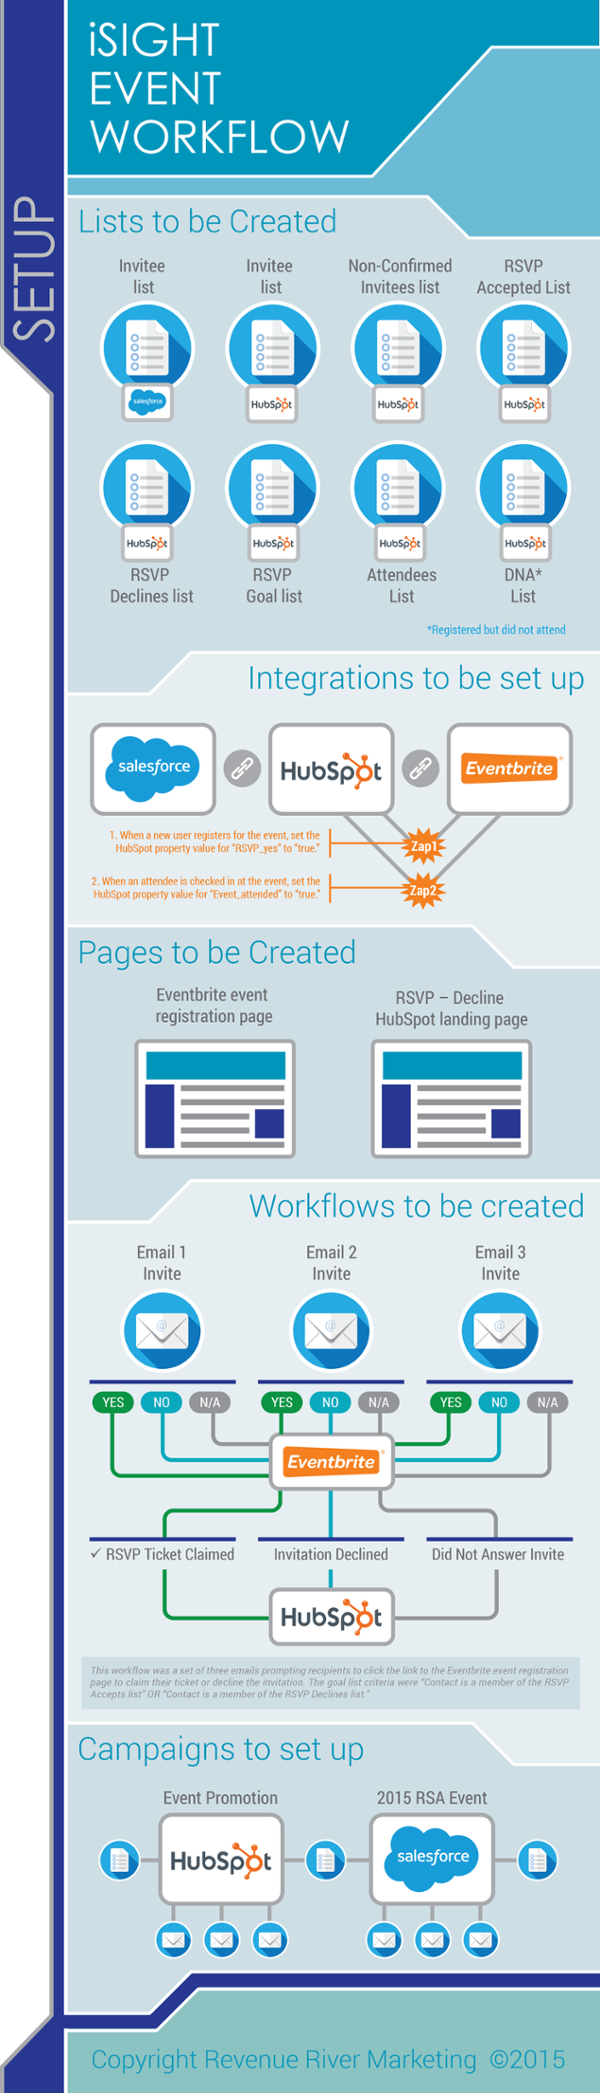 Software Integration with HubSpot, Salesforce, and Eventbrite Infographic